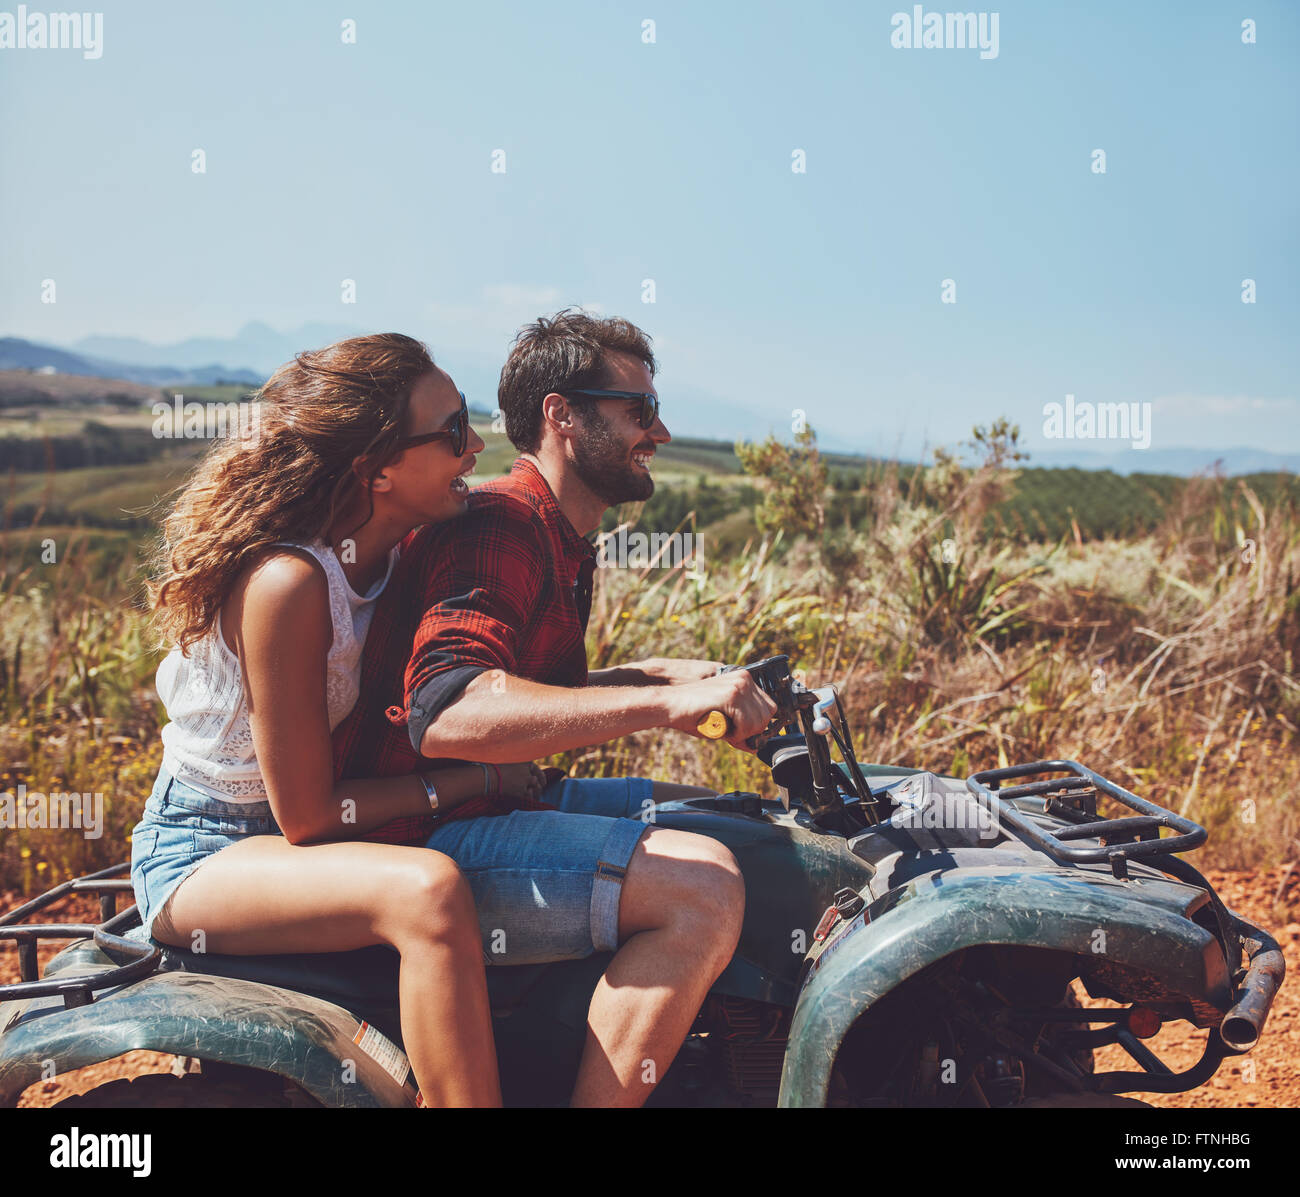 Side view of young man and woman riding on a quad bike on a summer holiday. Couple enjoying holidays on a quad bike - Stock Image